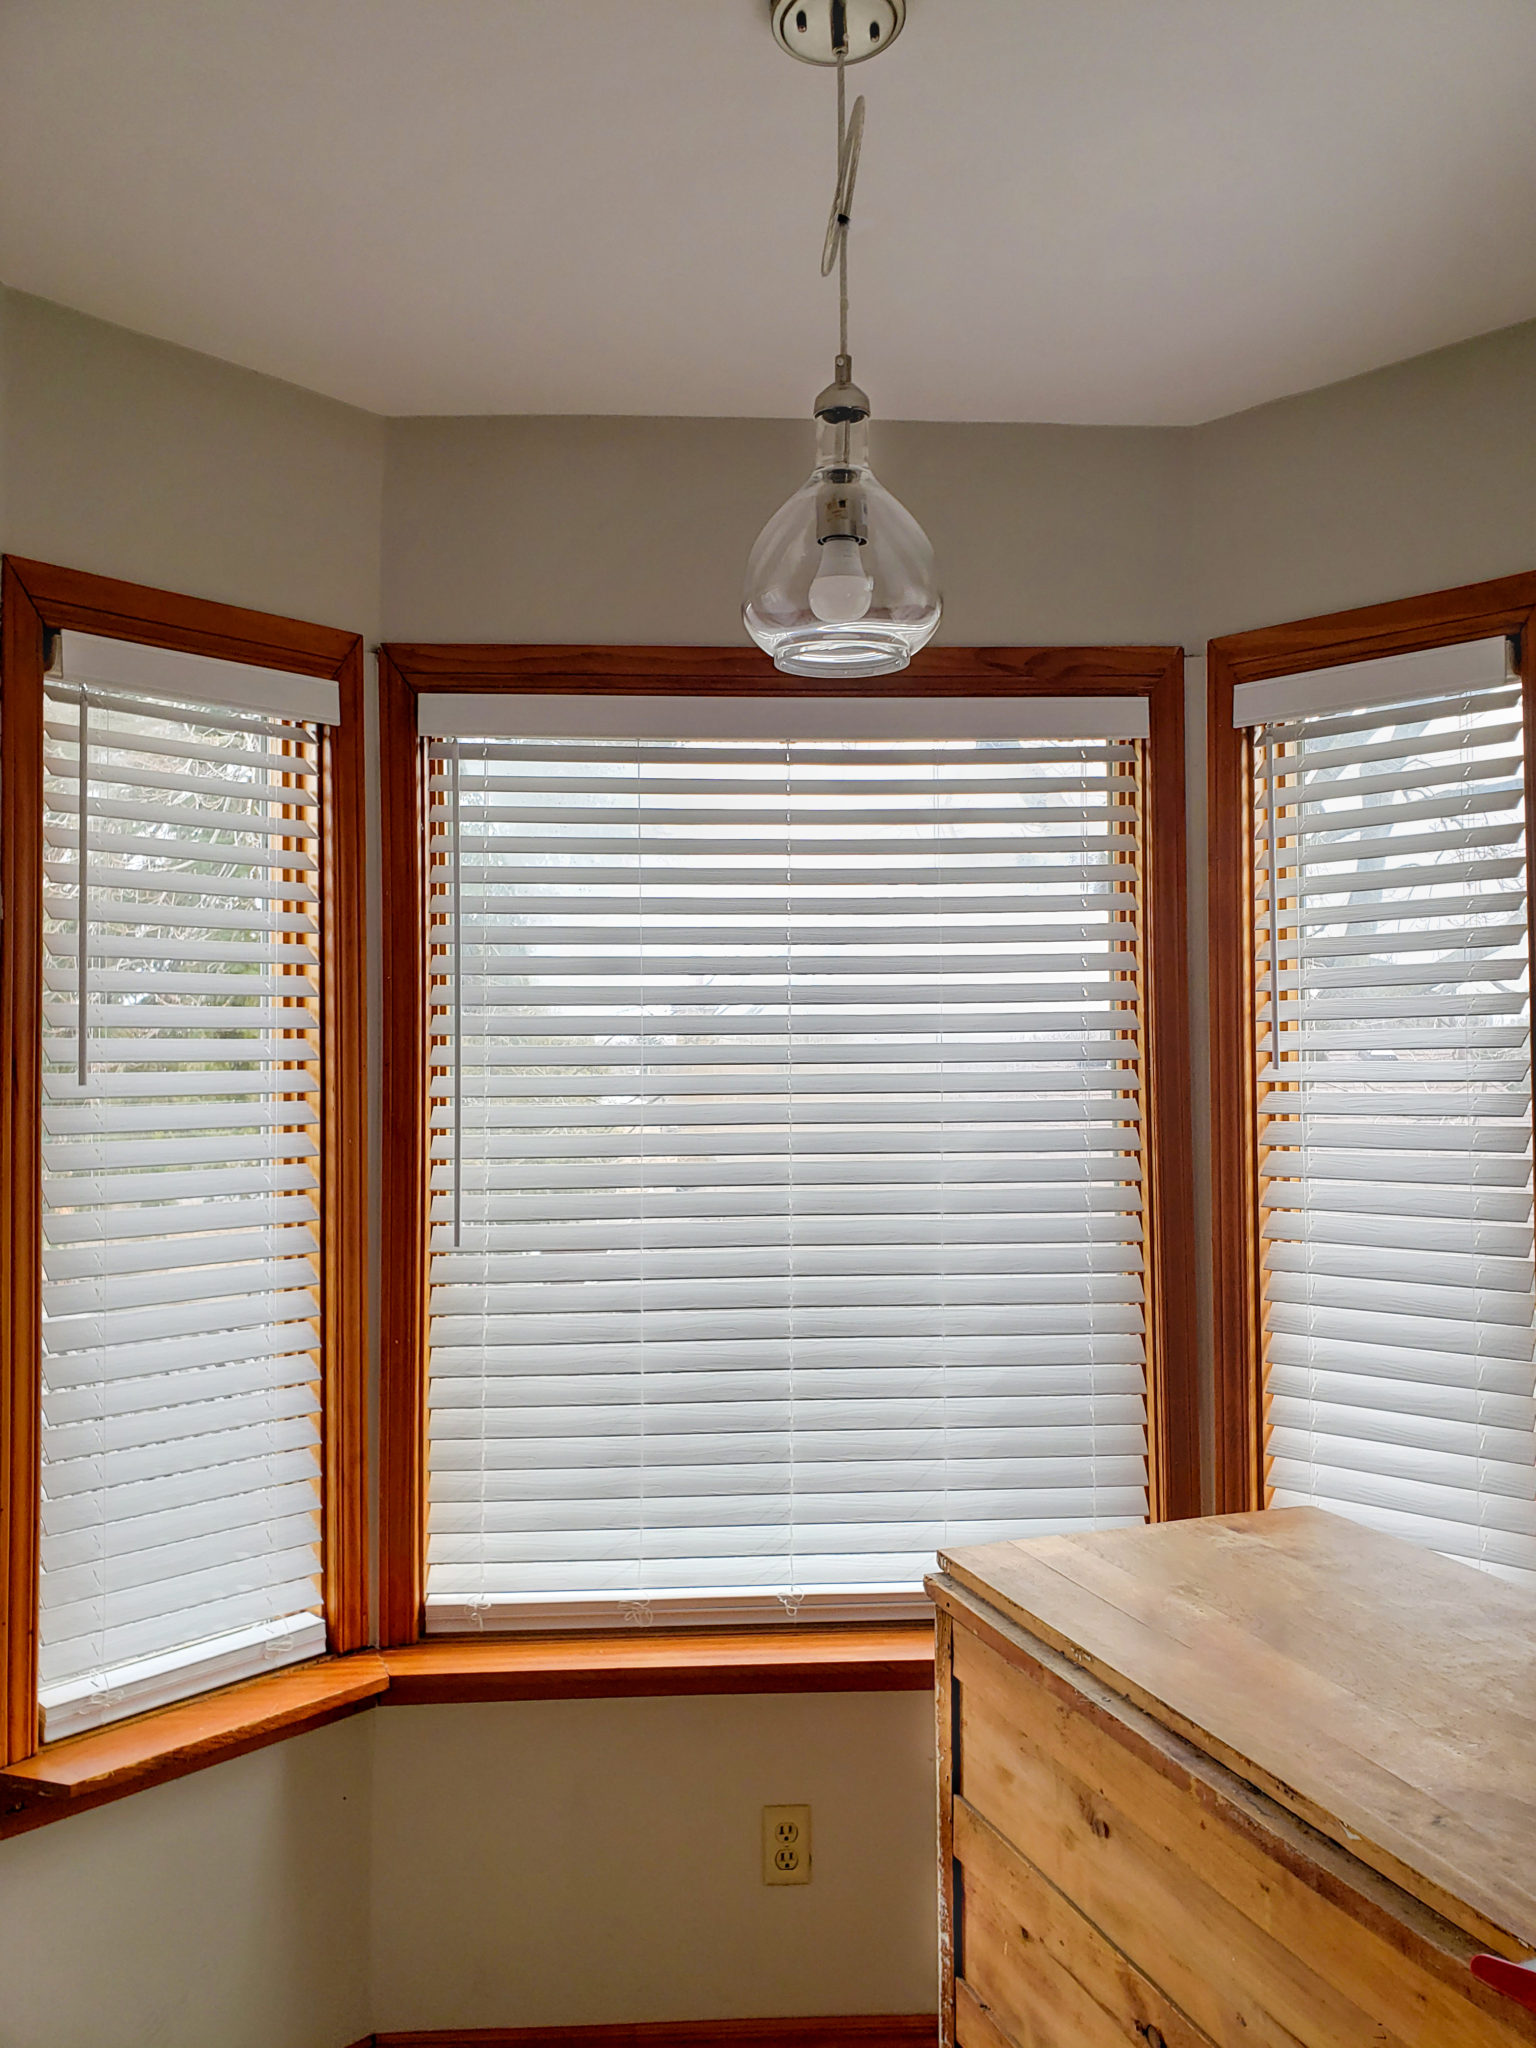 Kitchen window coverings - After